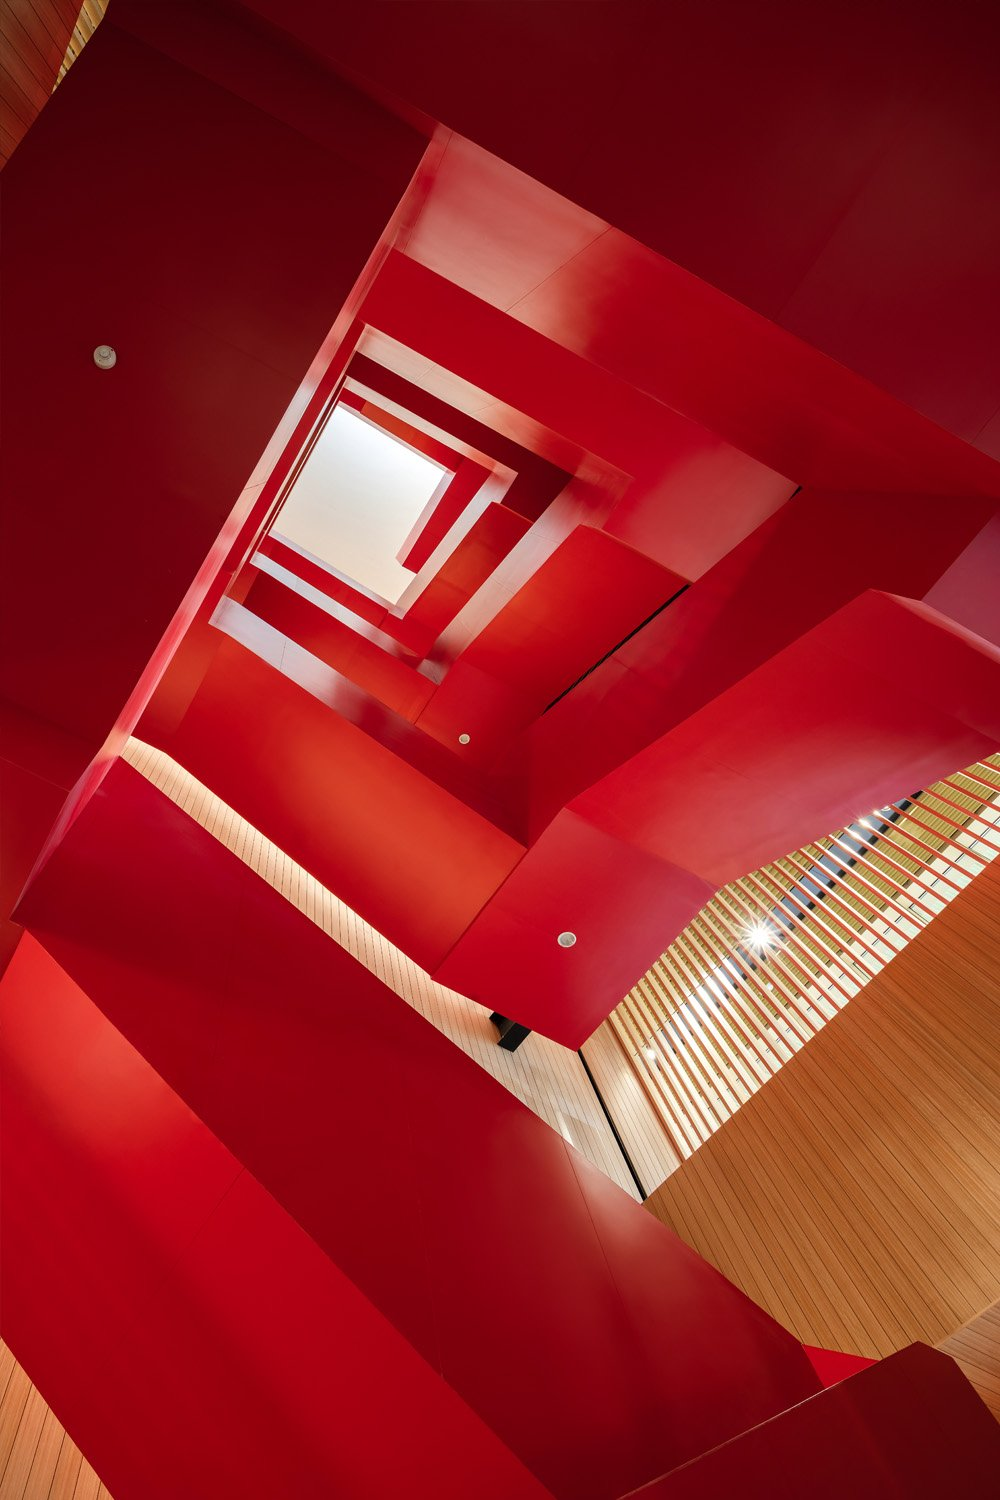 Sculptural staircase. Yu Chen Chao